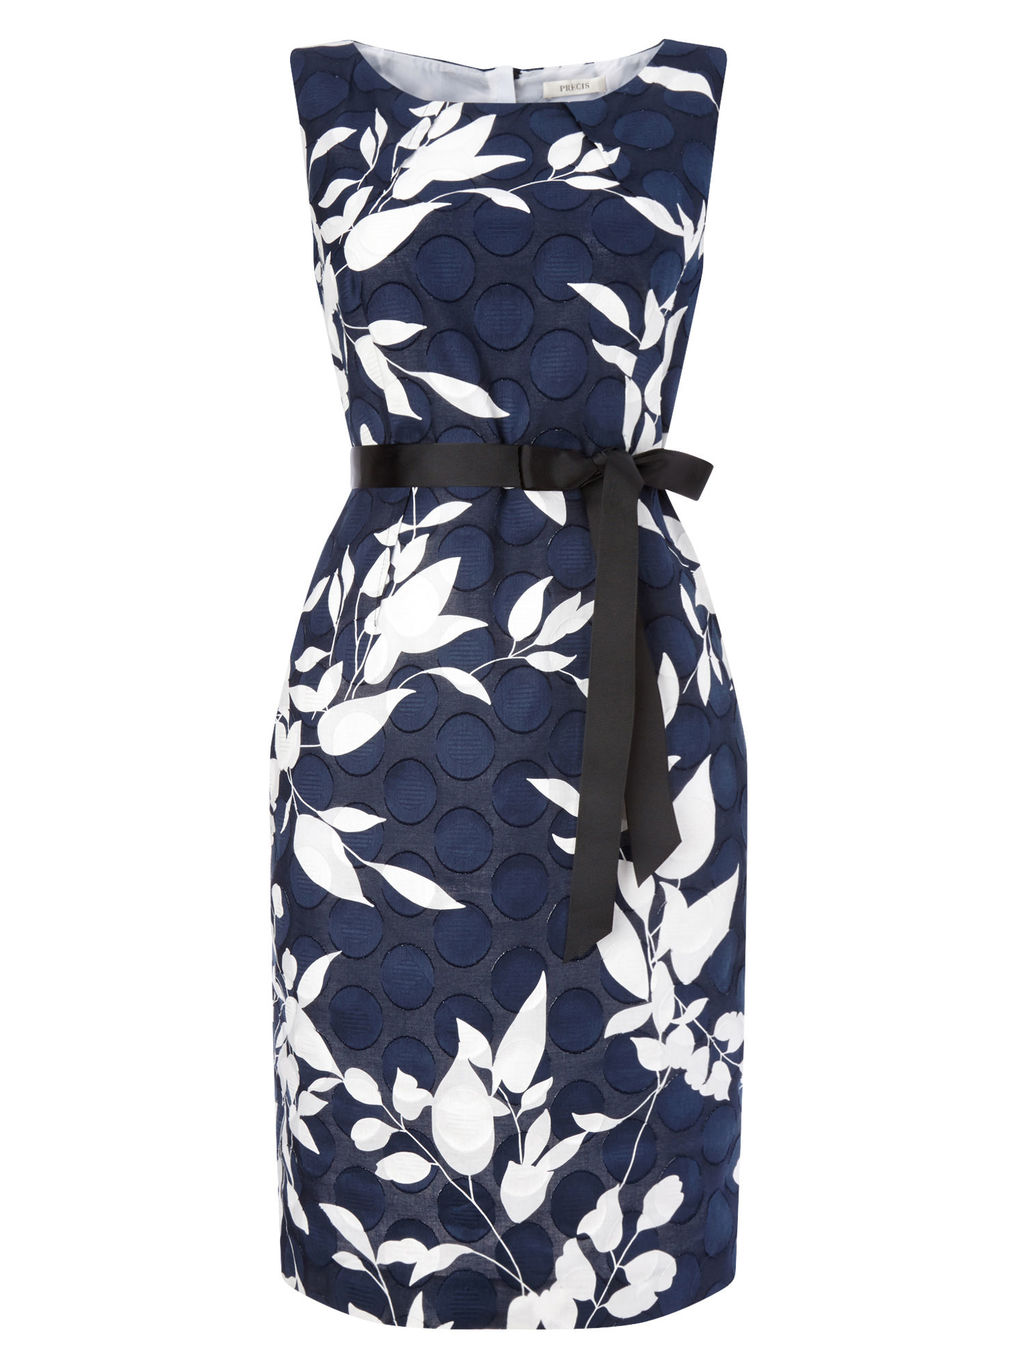 Navy Clipse Spot Dress - style: shift; neckline: round neck; sleeve style: sleeveless; waist detail: belted waist/tie at waist/drawstring; secondary colour: white; predominant colour: navy; occasions: evening; length: on the knee; fit: body skimming; fibres: cotton - 100%; sleeve length: sleeveless; pattern type: fabric; pattern: florals; texture group: woven light midweight; embellishment: bow; multicoloured: multicoloured; season: s/s 2016; wardrobe: event